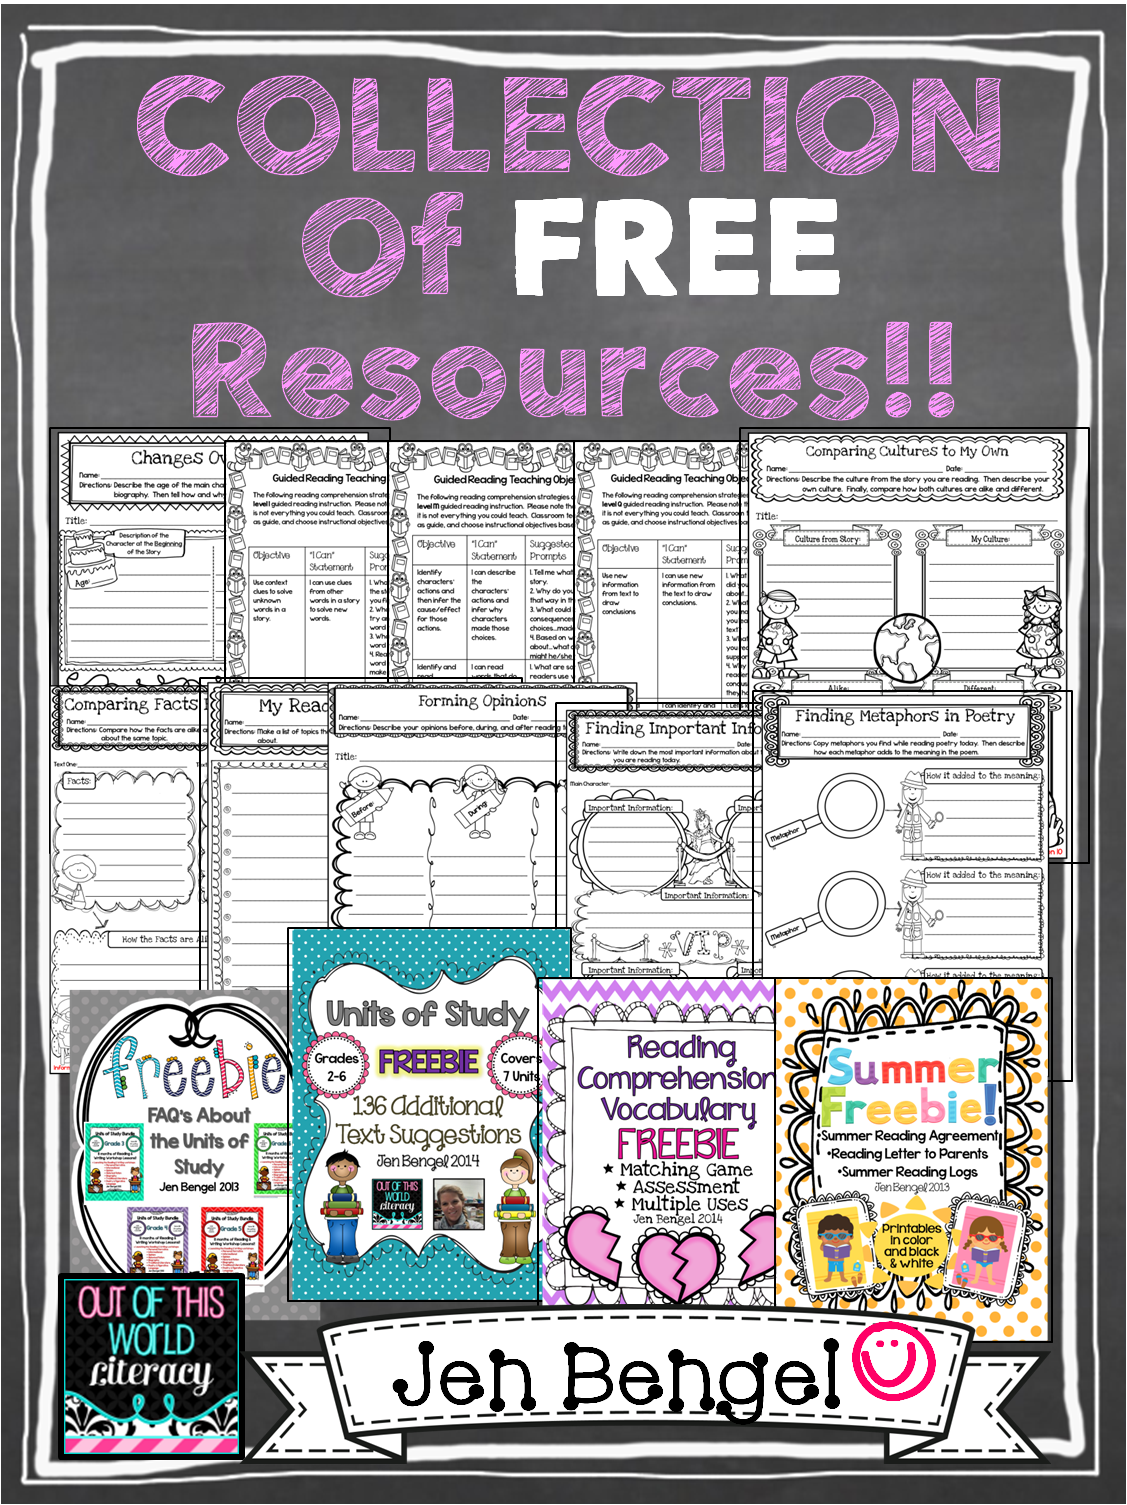 A Collection Of Over 20 Free Reading Writing Language And Spelling Resources For Grades 2 8